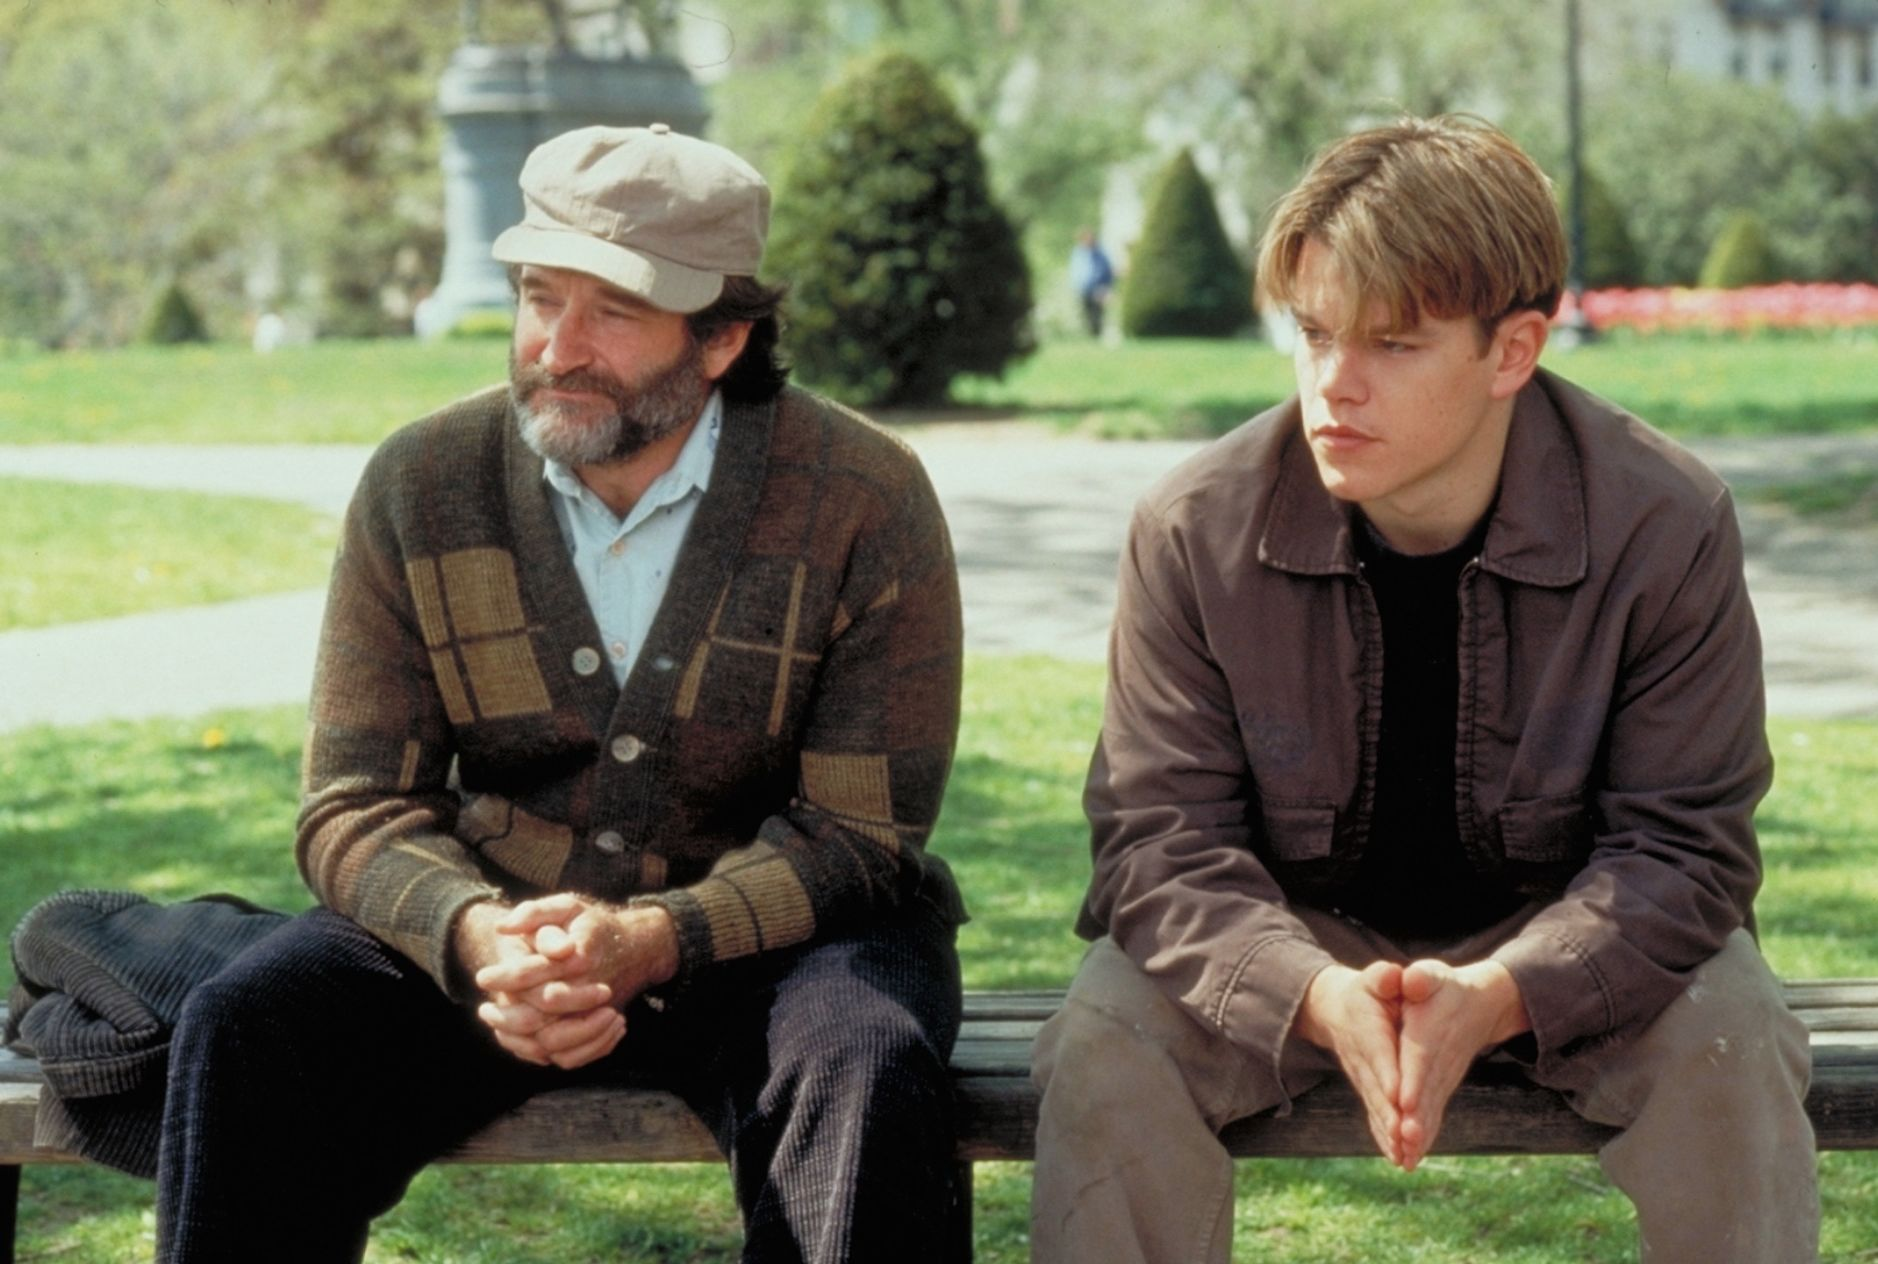 It S Not Your Fault On Hanging Out And Healing In Good Will Hunting Features Roger Ebert